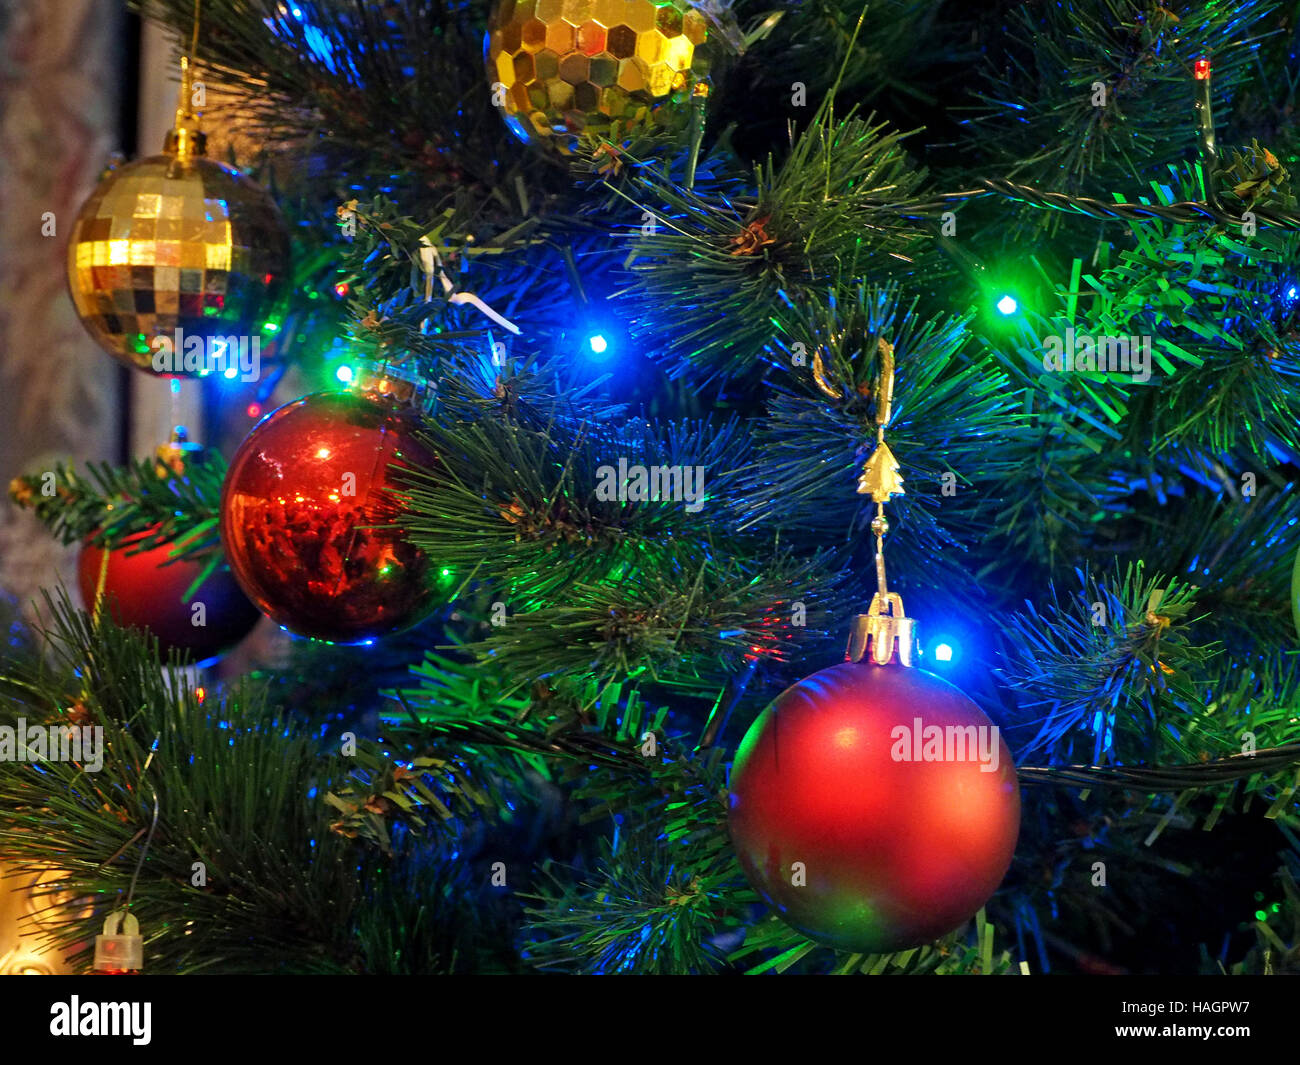 coloured colored lights on seasonal christmas decorations give festive red green gold and blue glow